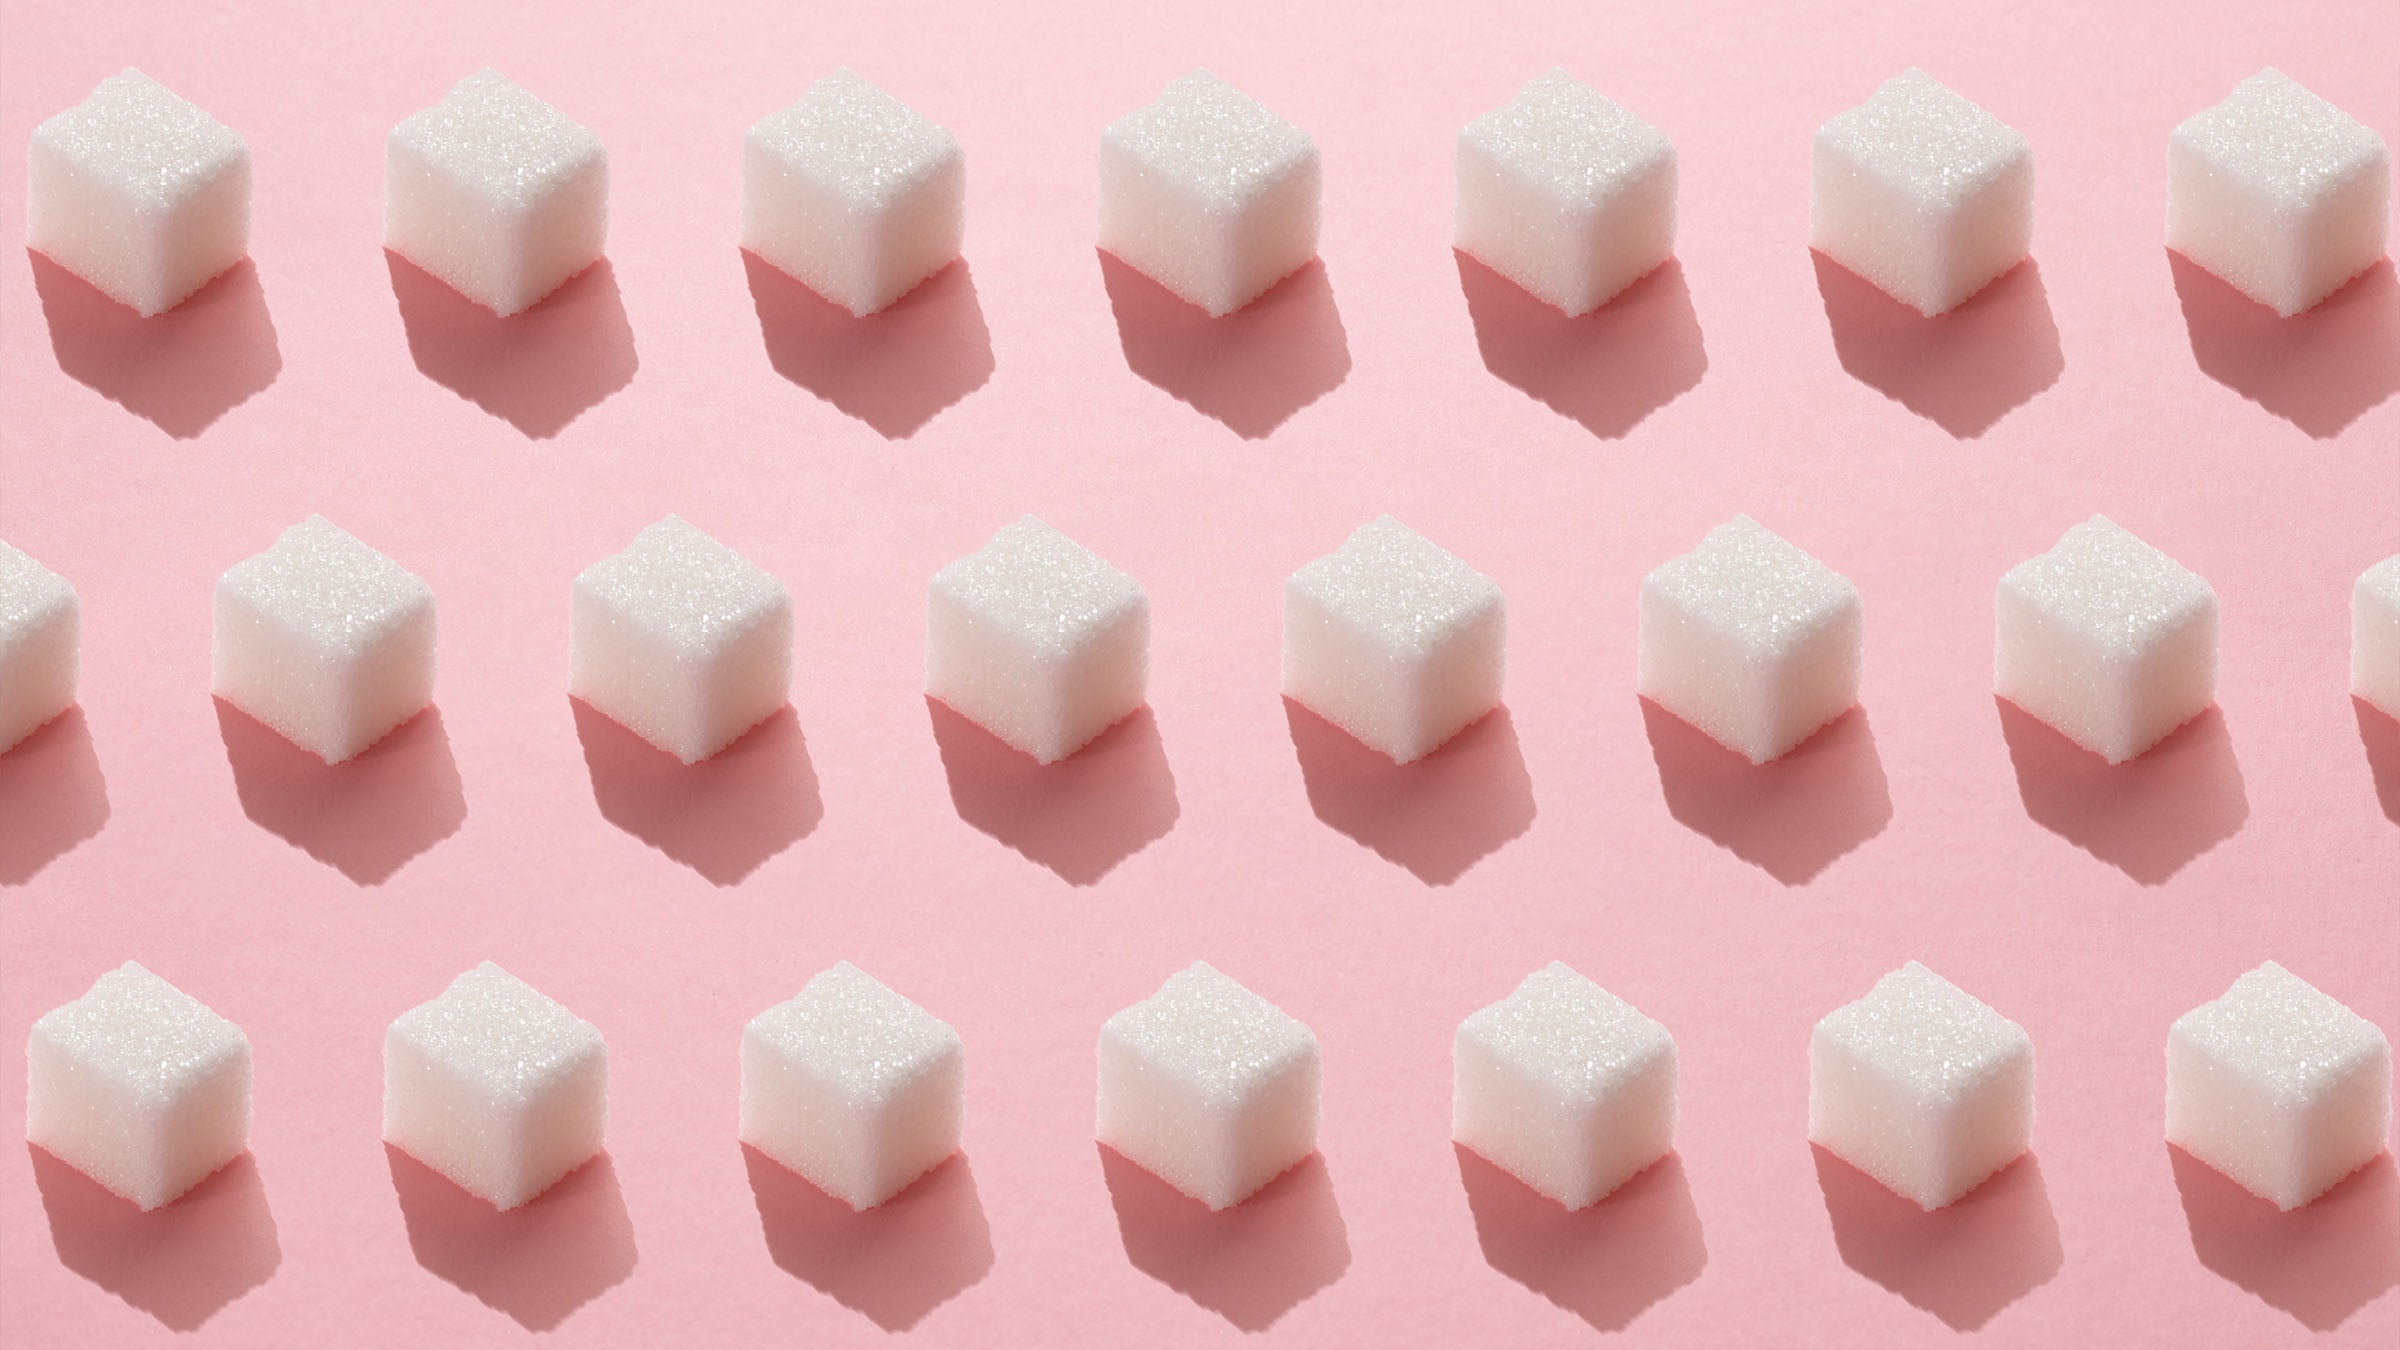 Facts and Myths About Sugar